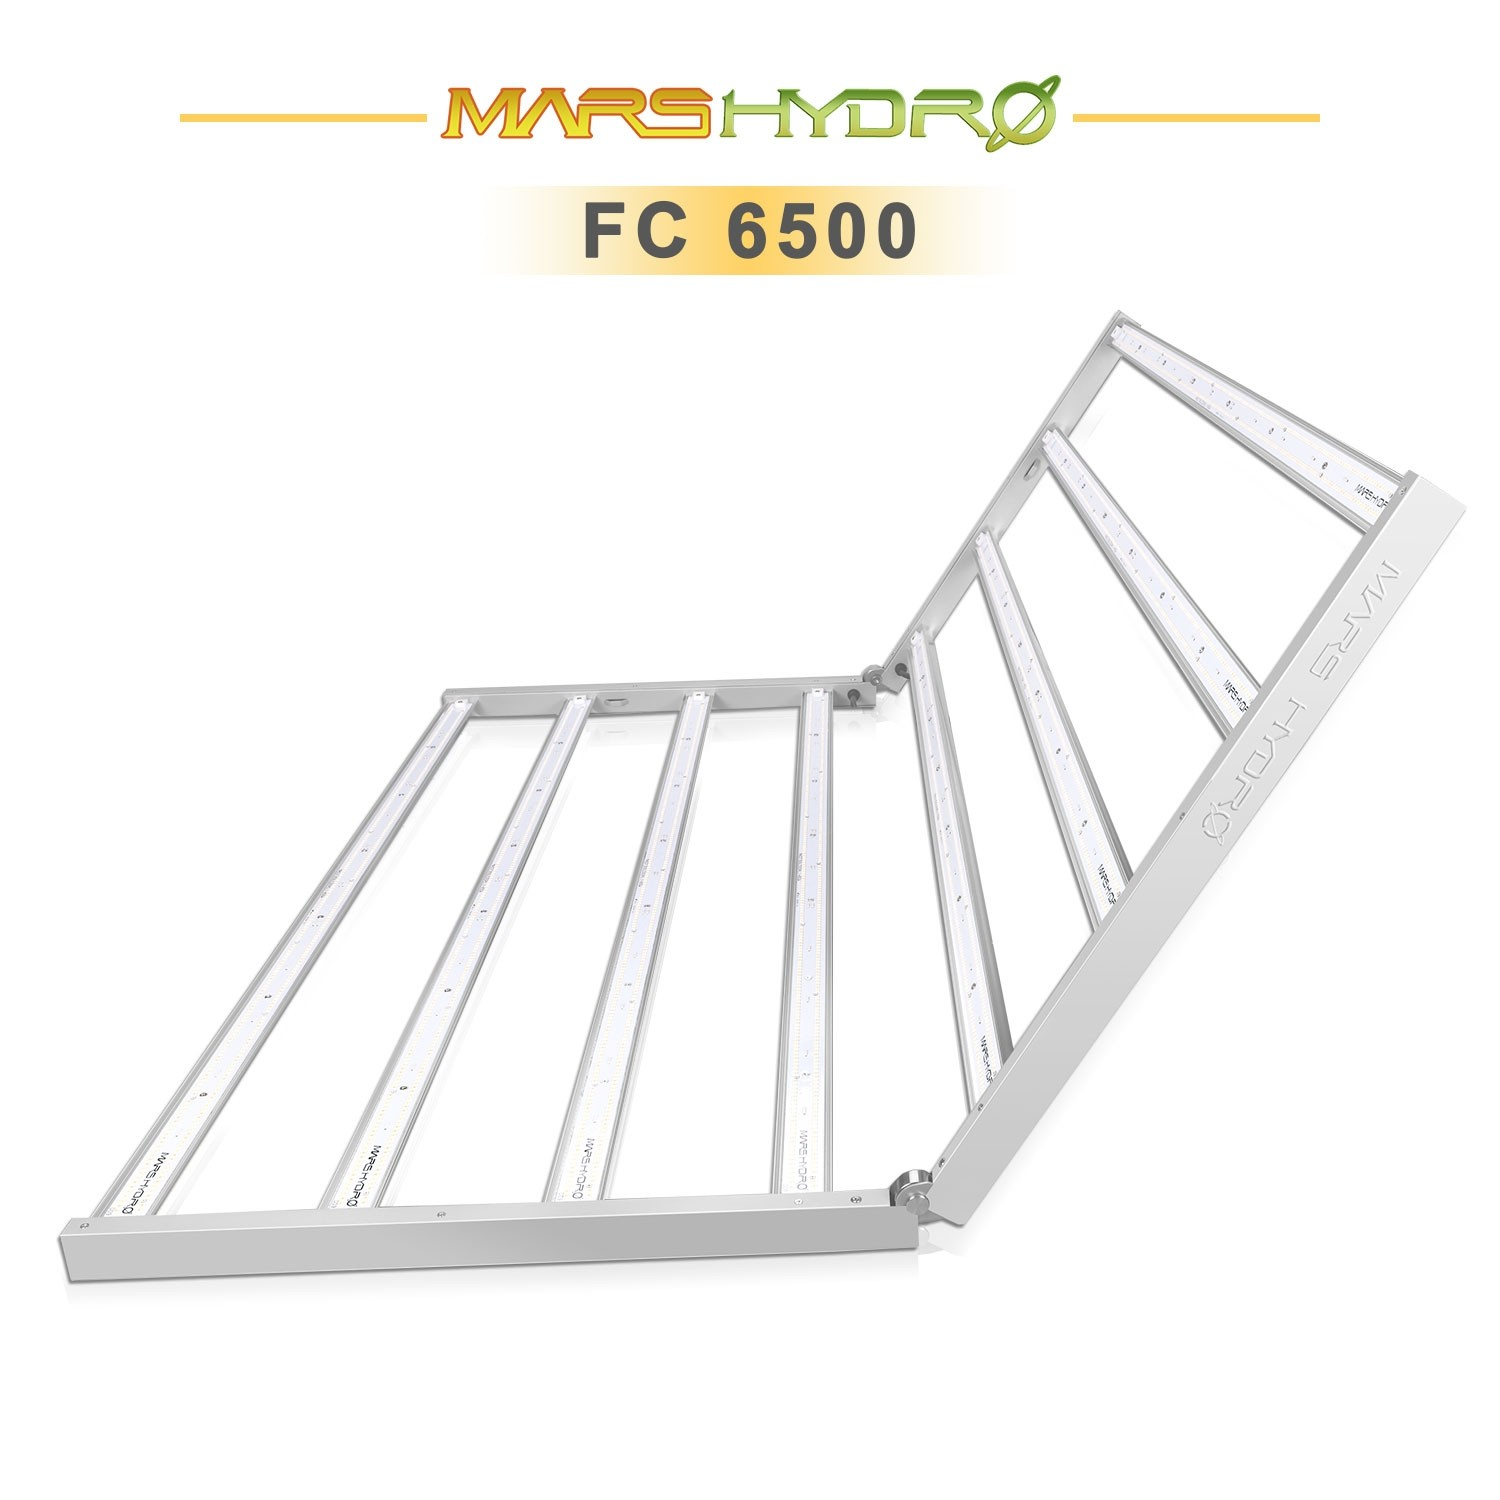 Mars Hydro 2020 DLC Approved 2.9umol/<strong>J</strong> Highest Efficacy Factory Wholesale LED GROW LIGHT 660W